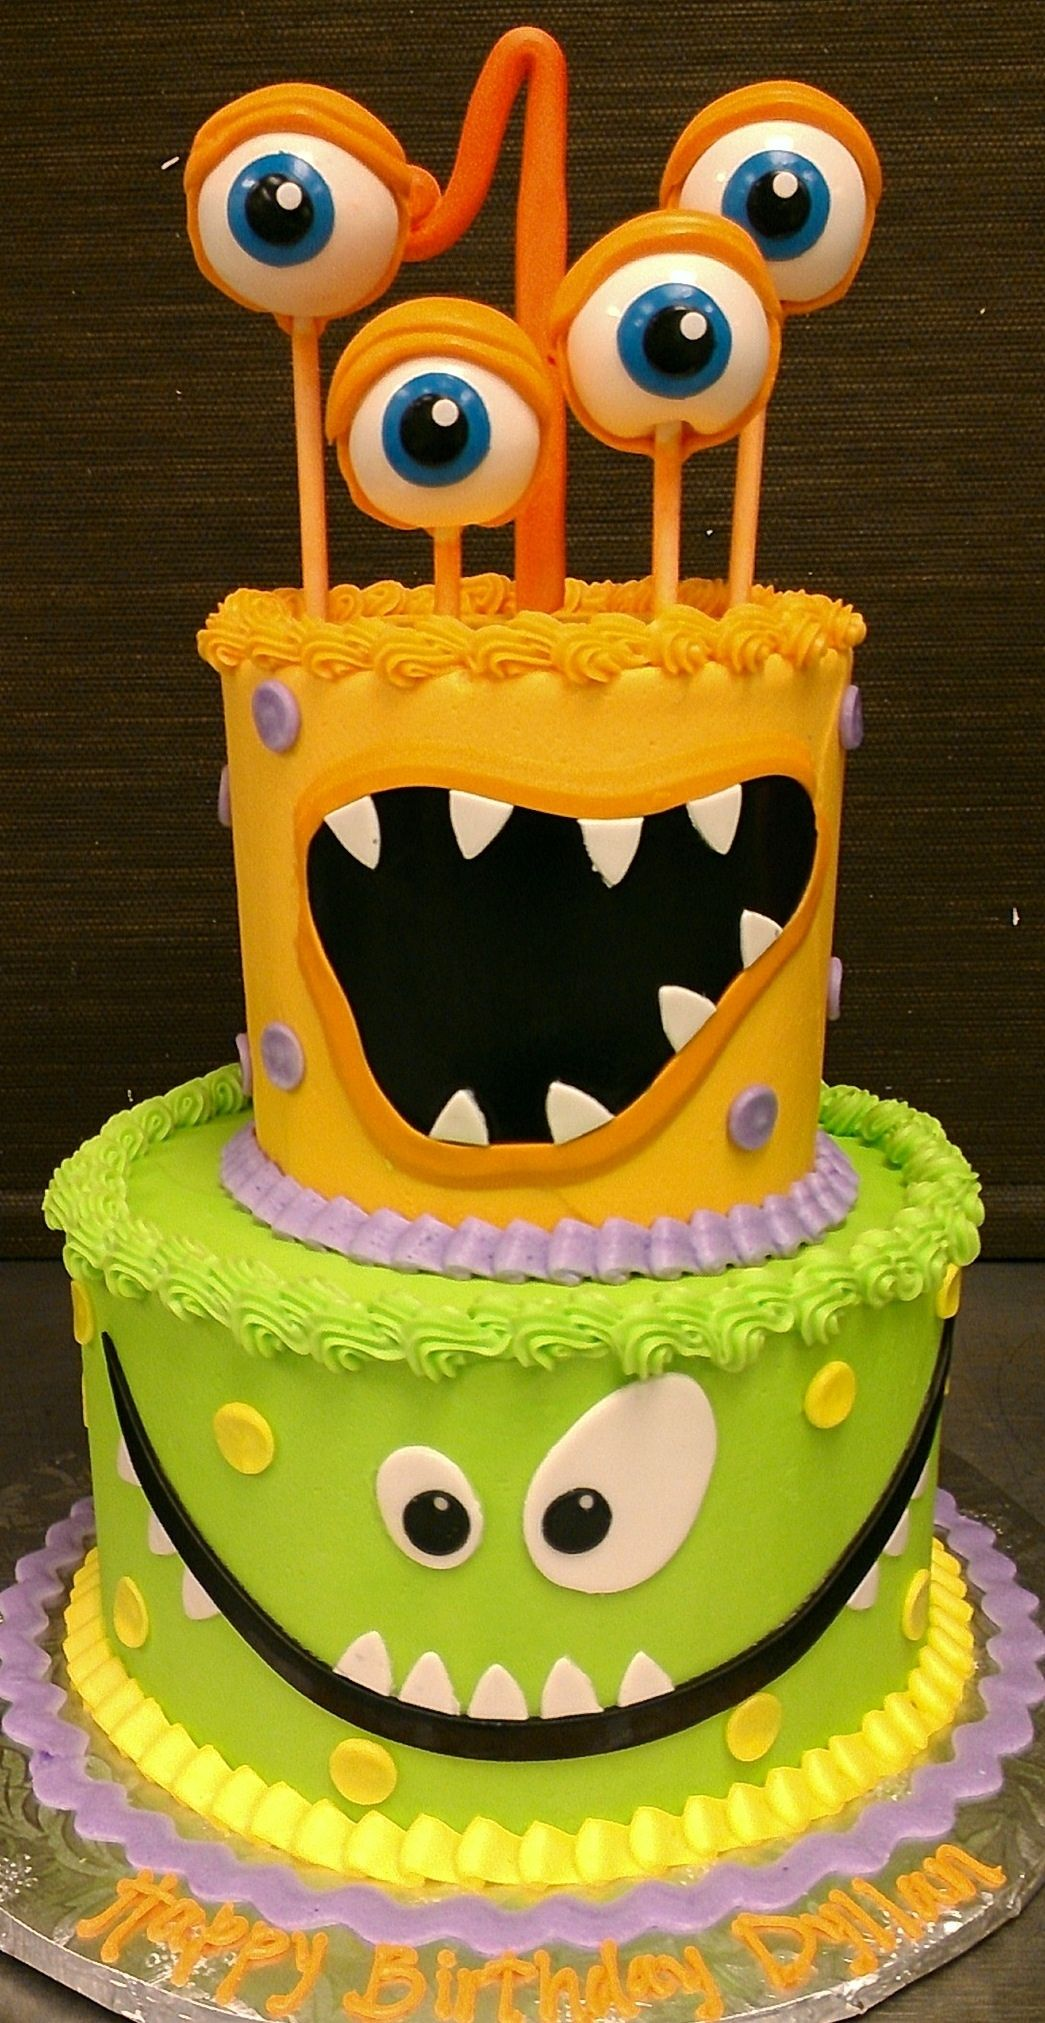 Cake Design For 5 Year Old Boy : Monster birthday cake Children Birthday Cakes ...